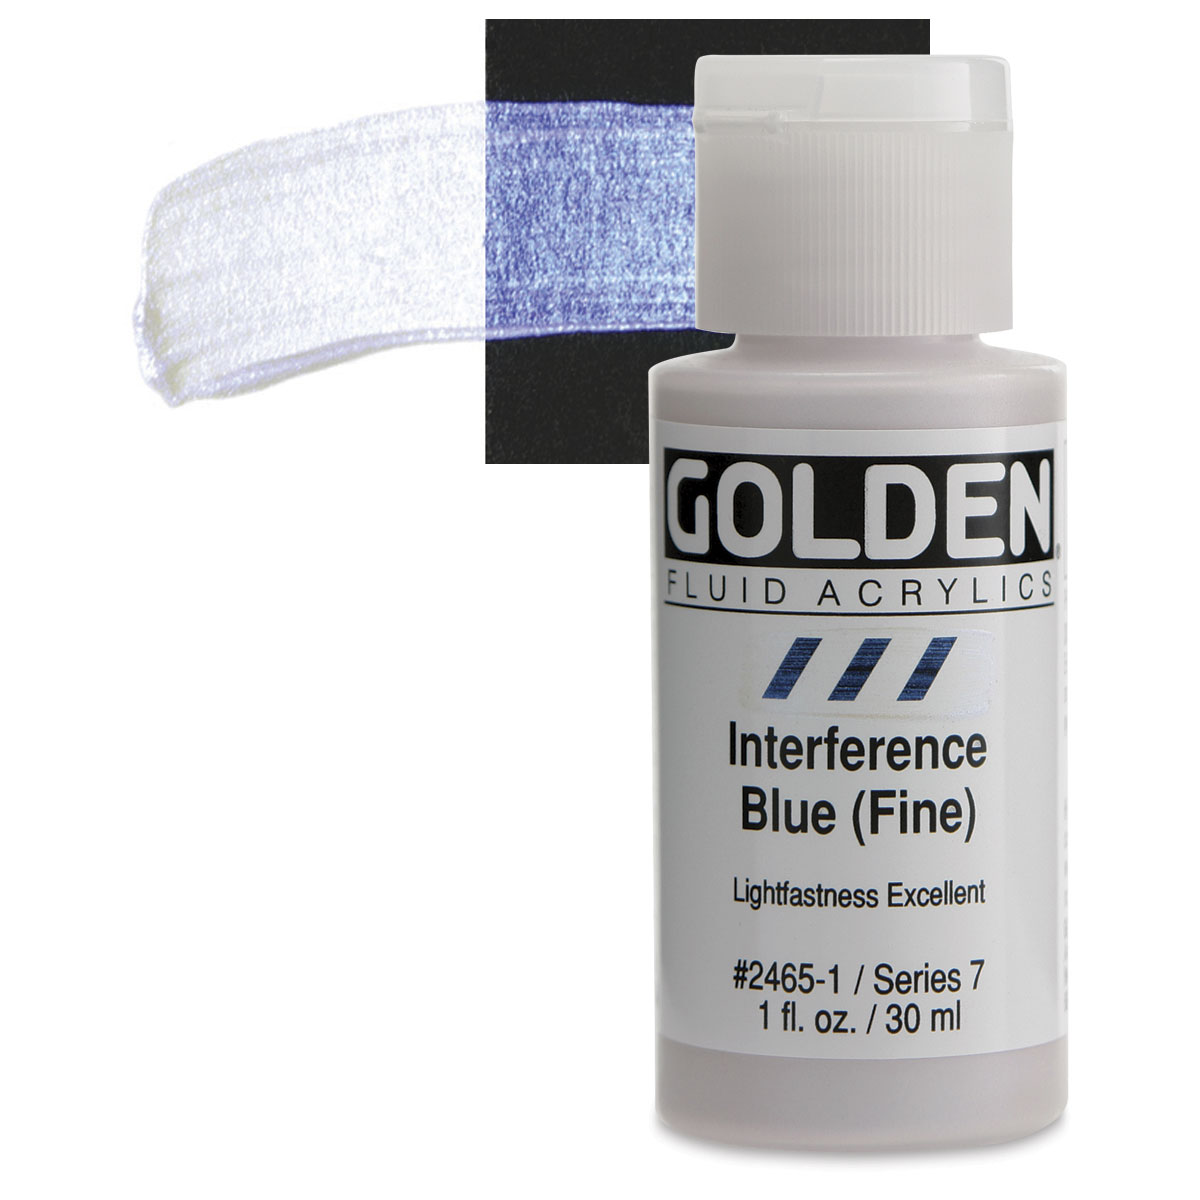 006385941 golden fluid acrylics blick art materials